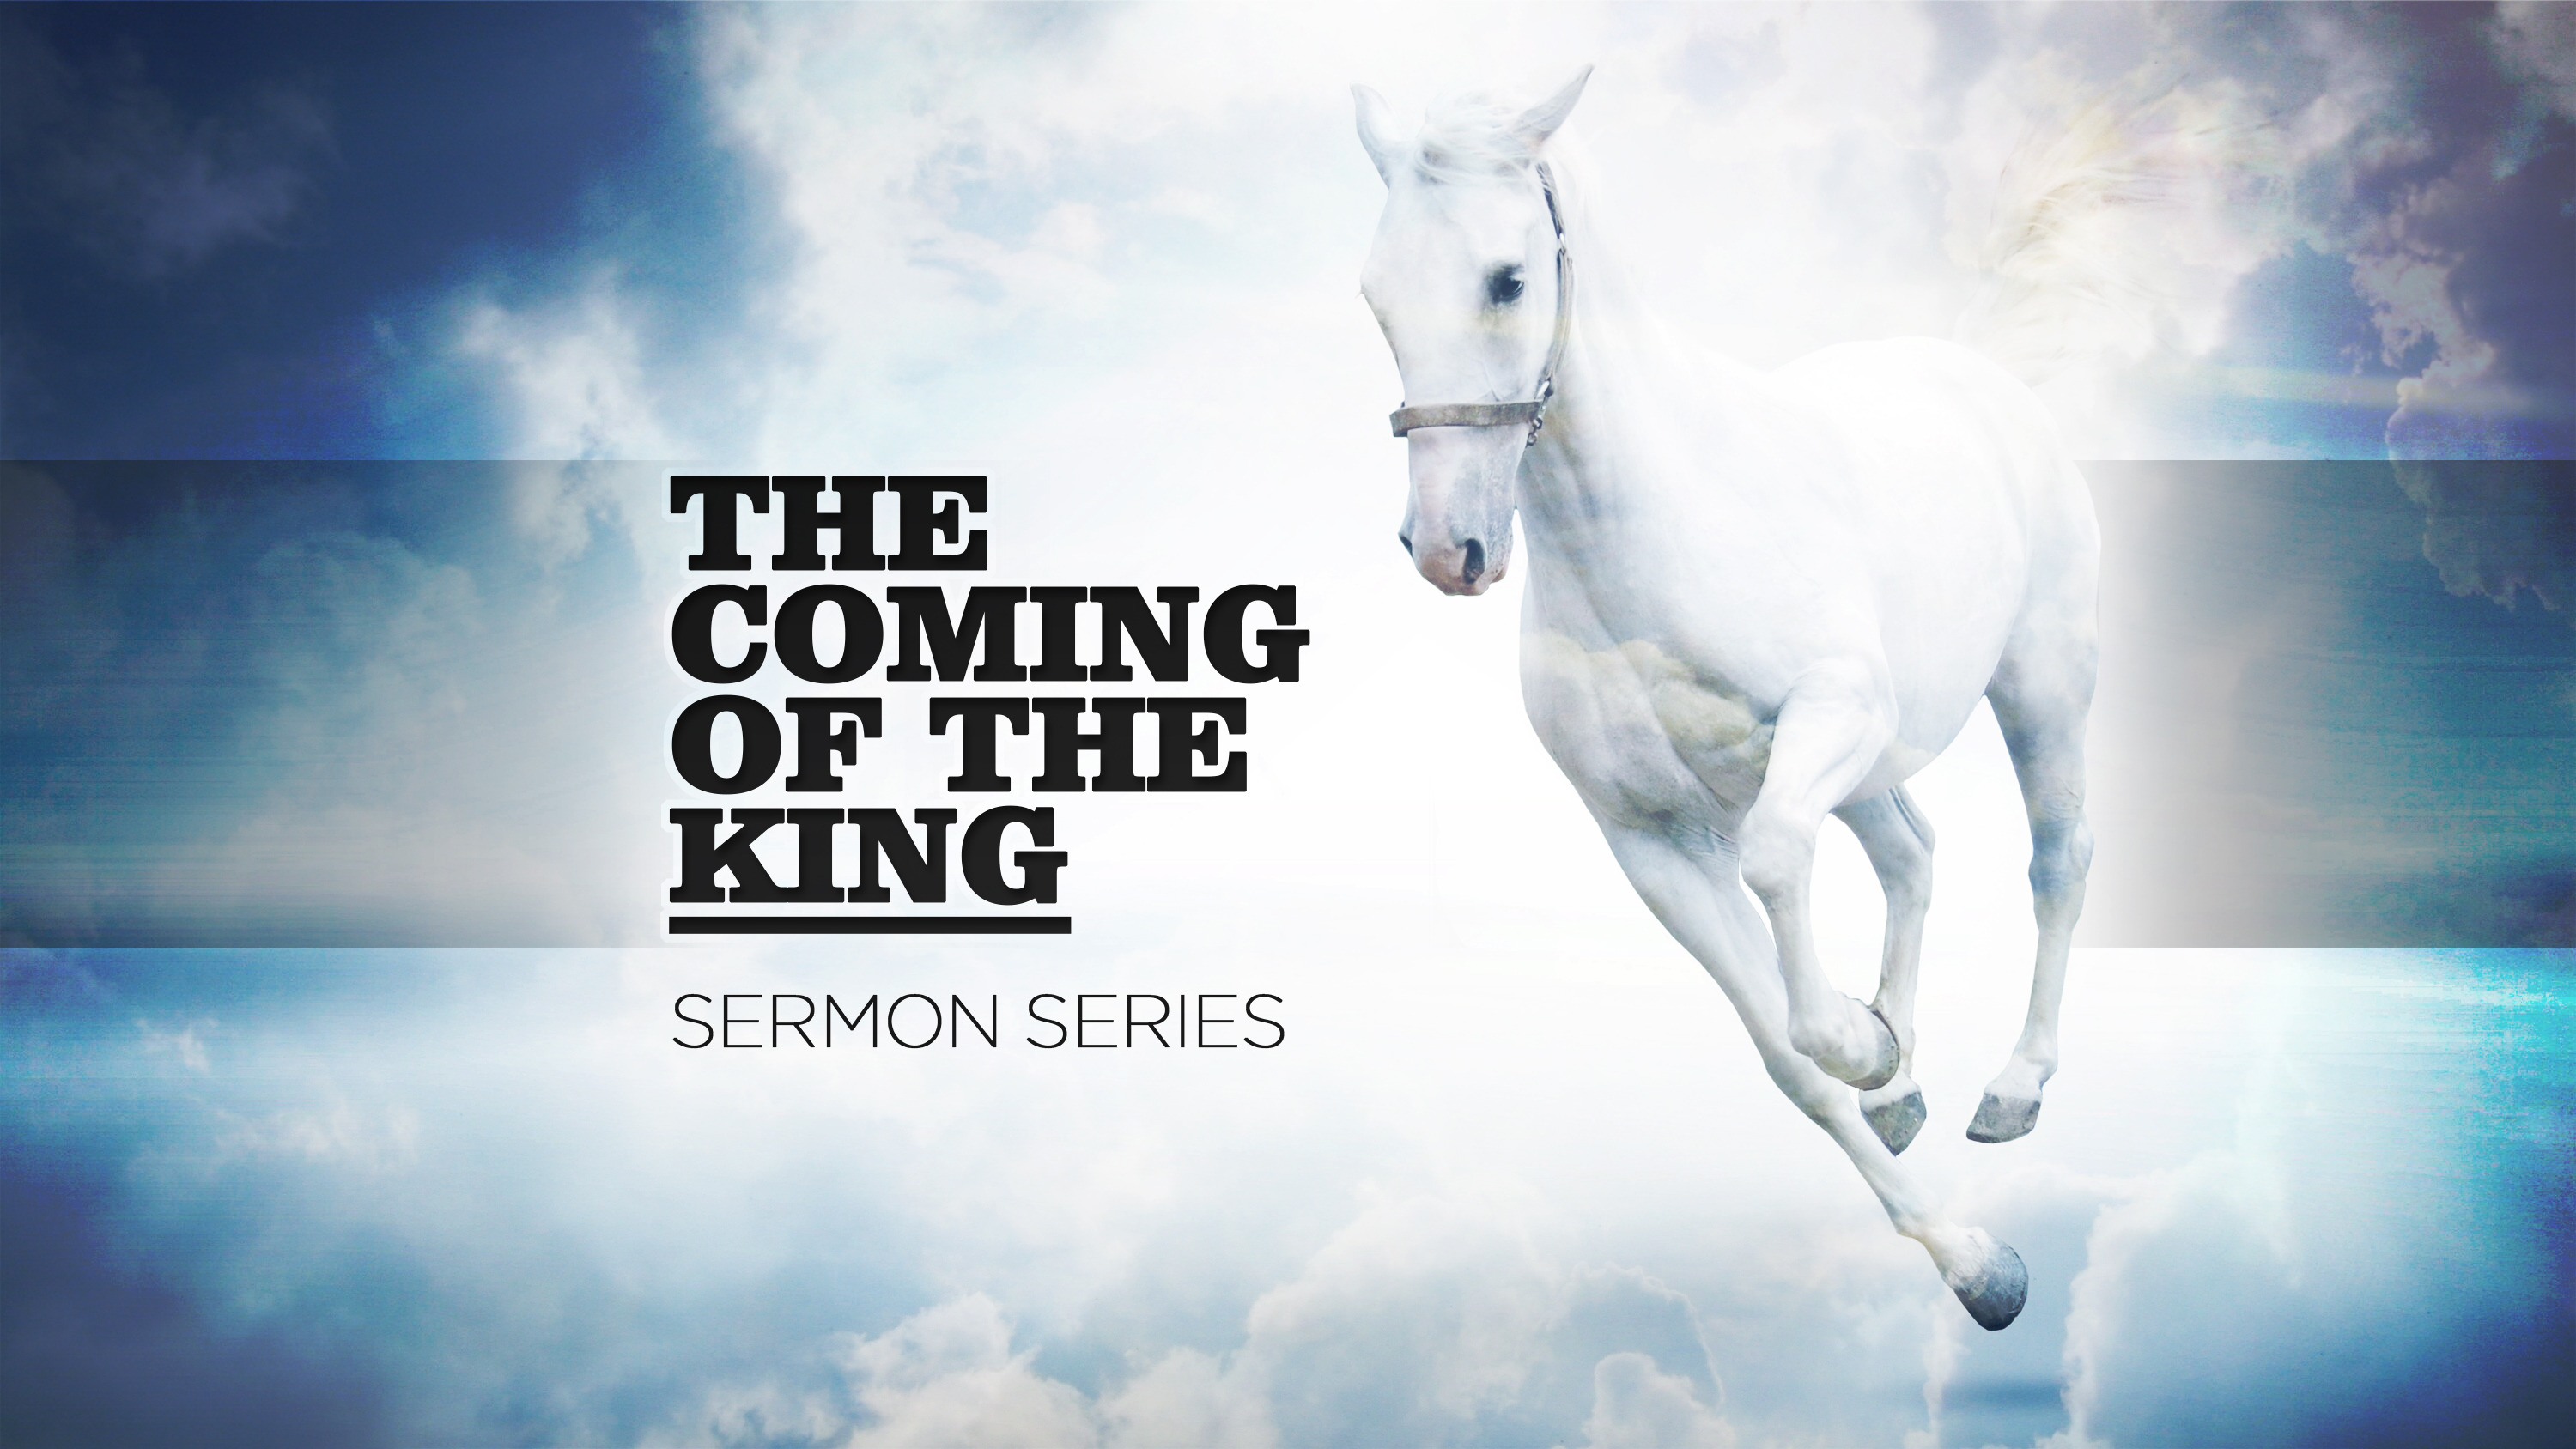 Artwork for The Coming of the King: The Second Coming of Jesus 12-14-14